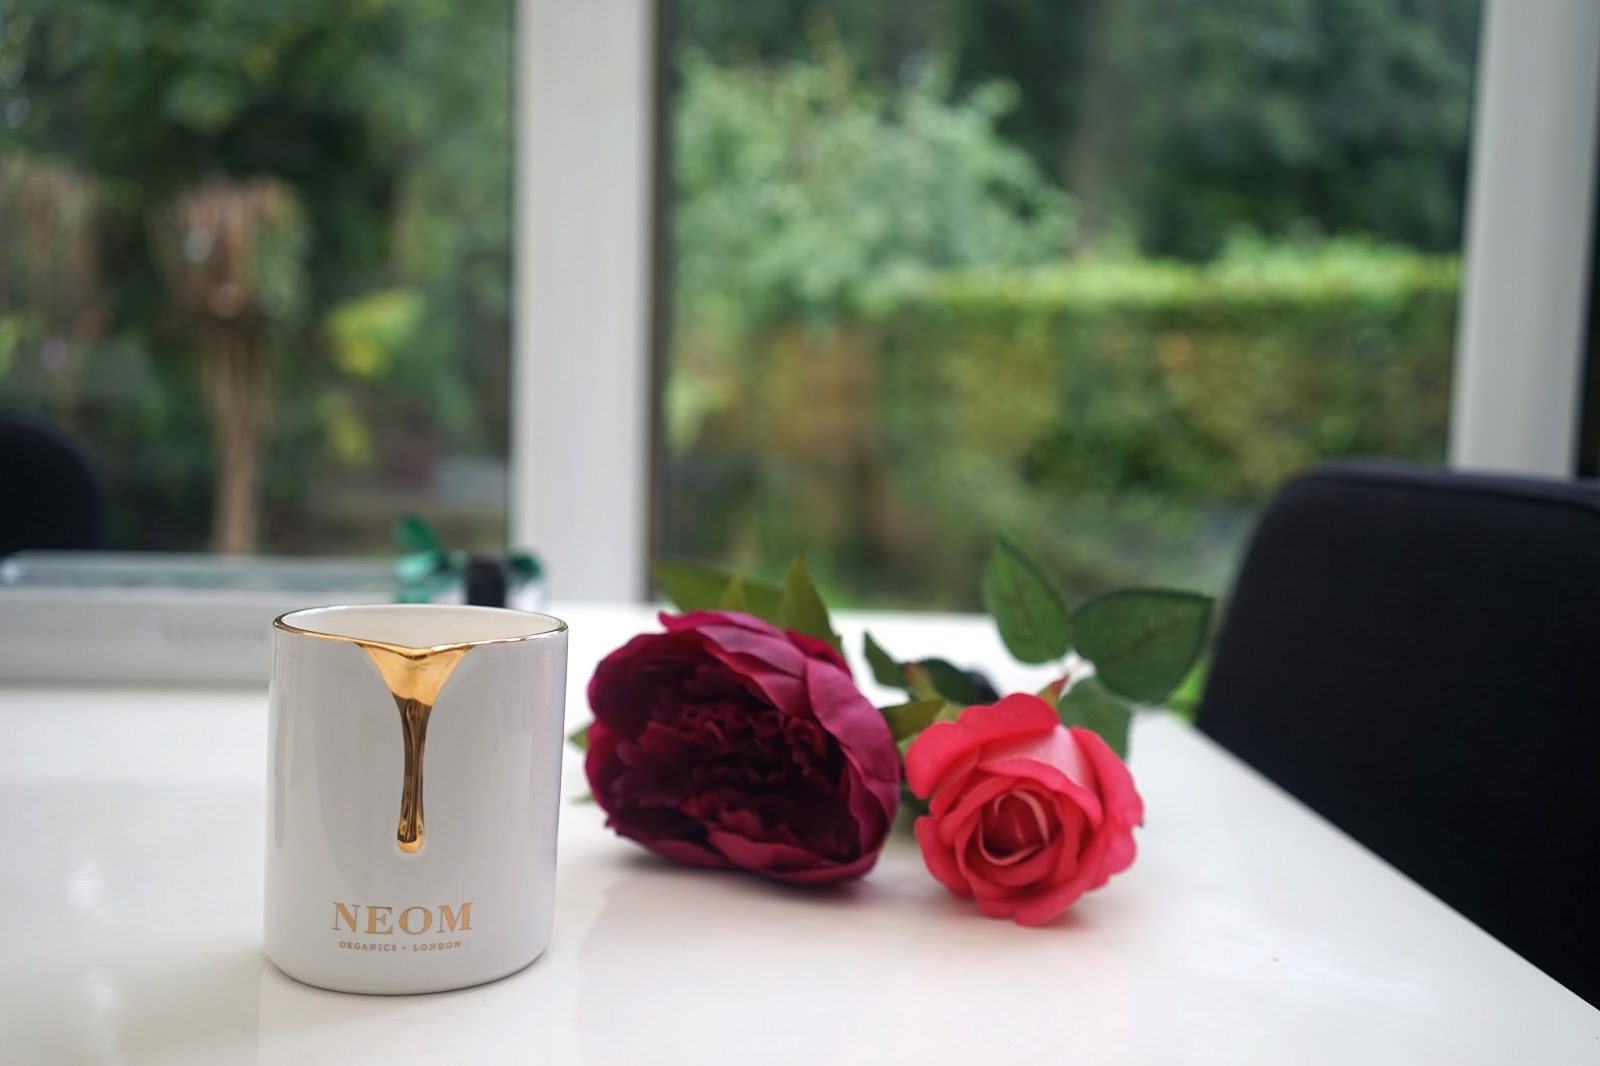 Neom intense treatment candle